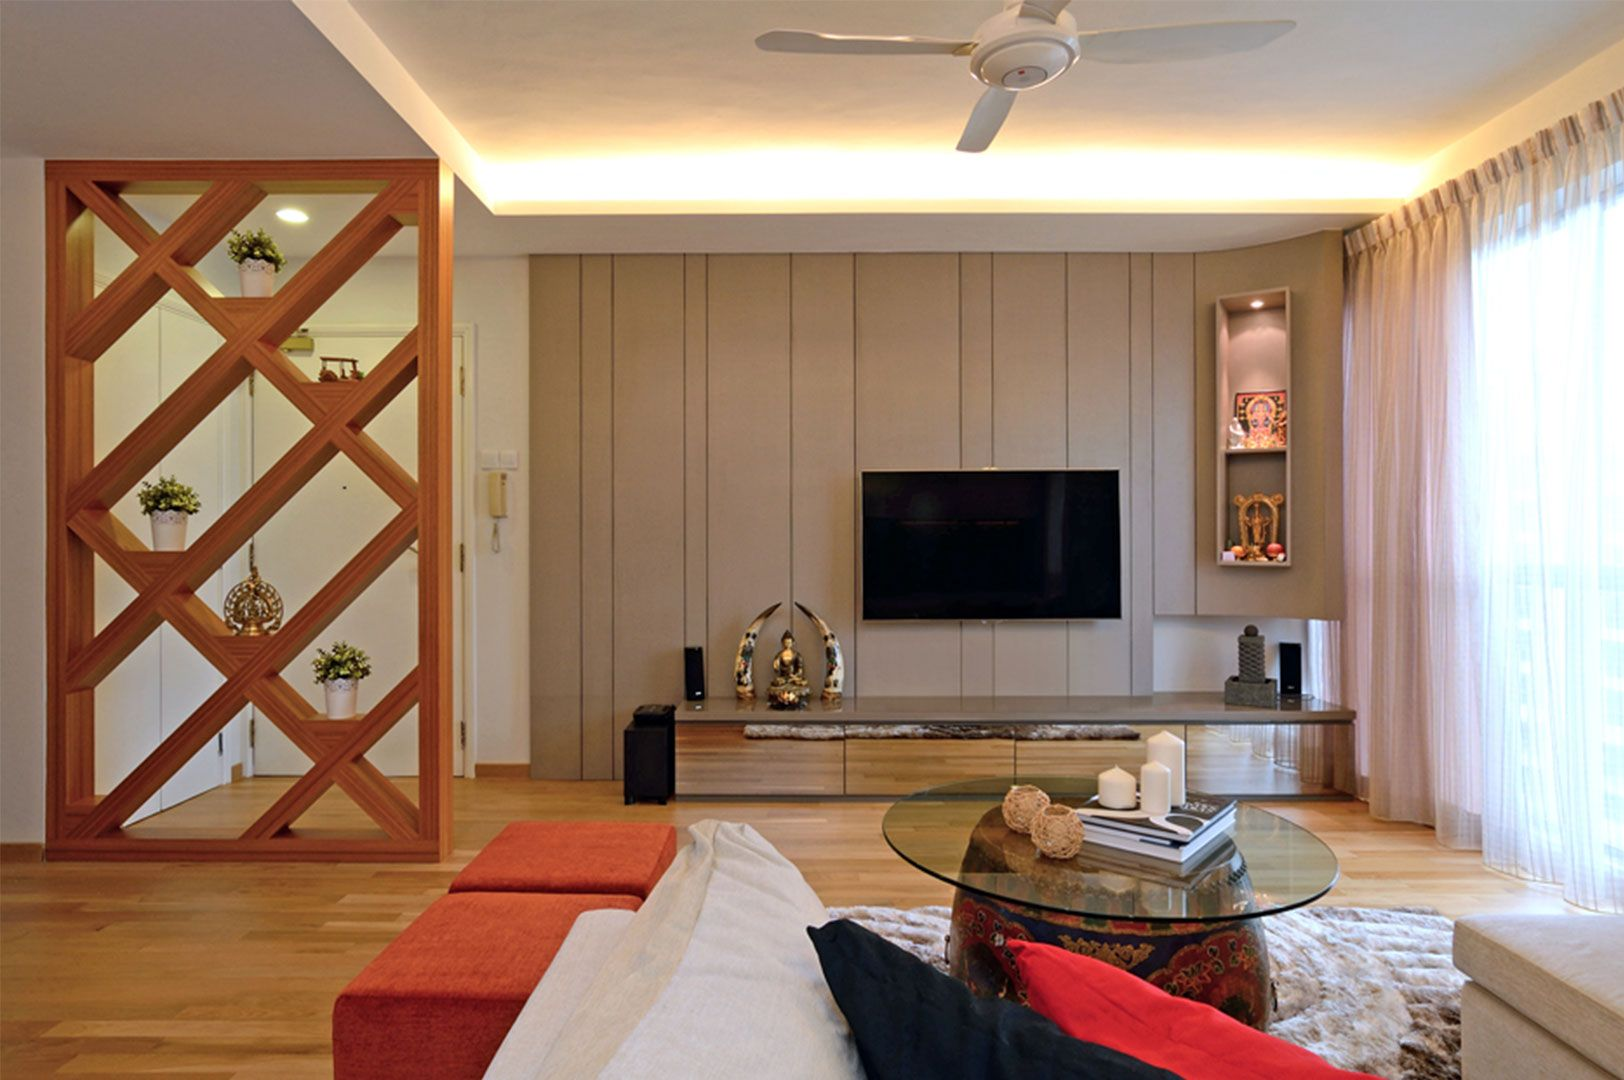 Interior Design Courses In Chennai Contact Admissions 91